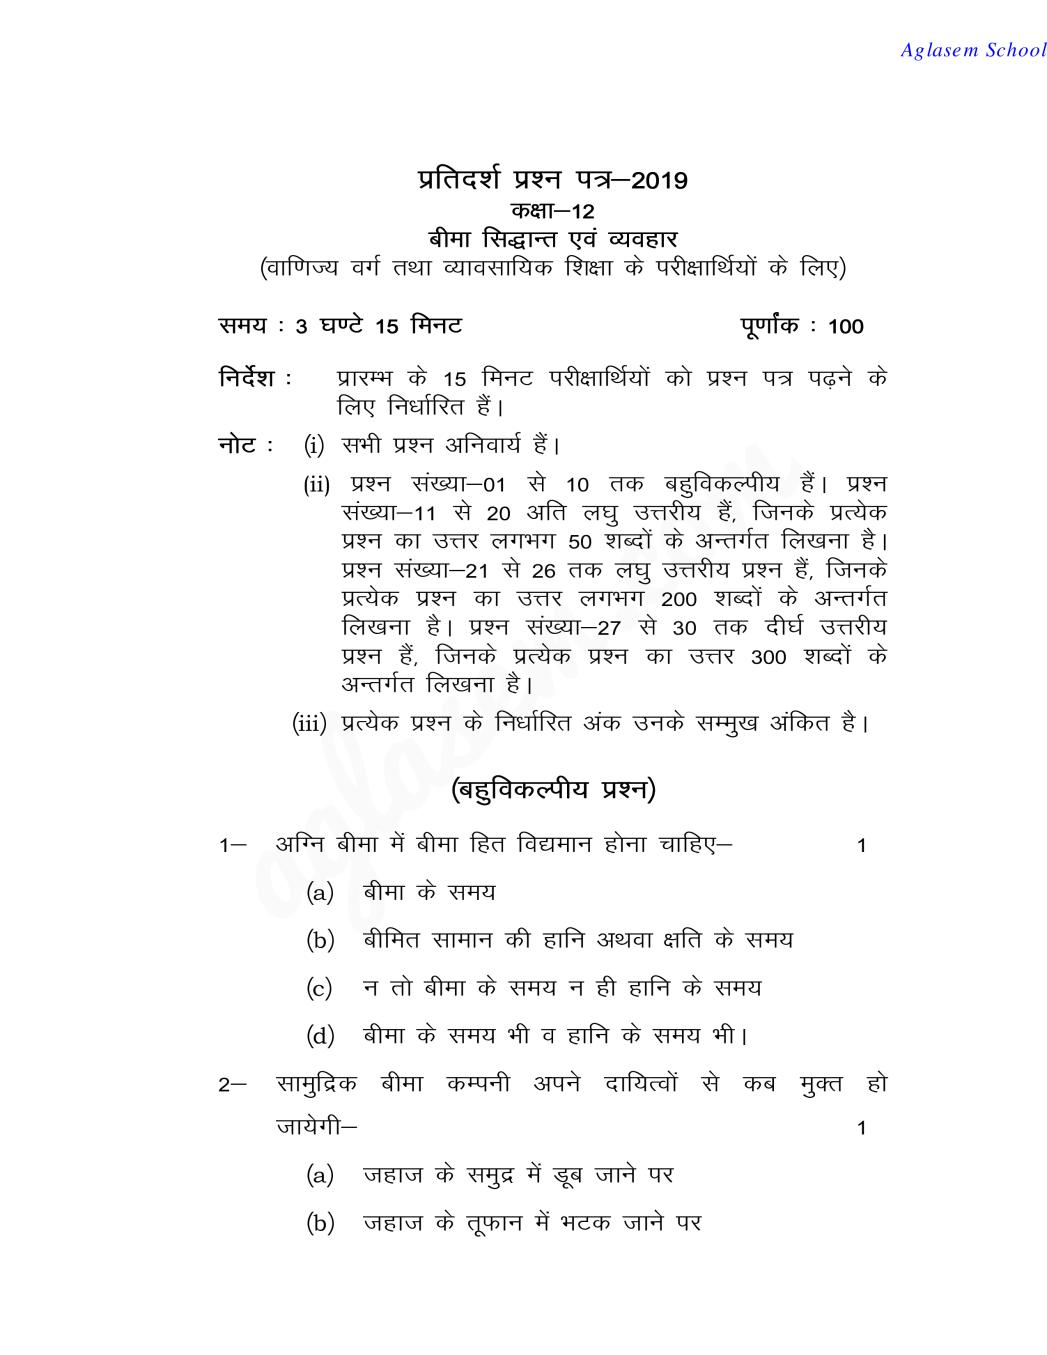 UP Board Model Paper 2020 Class 12th – Insurance Policy